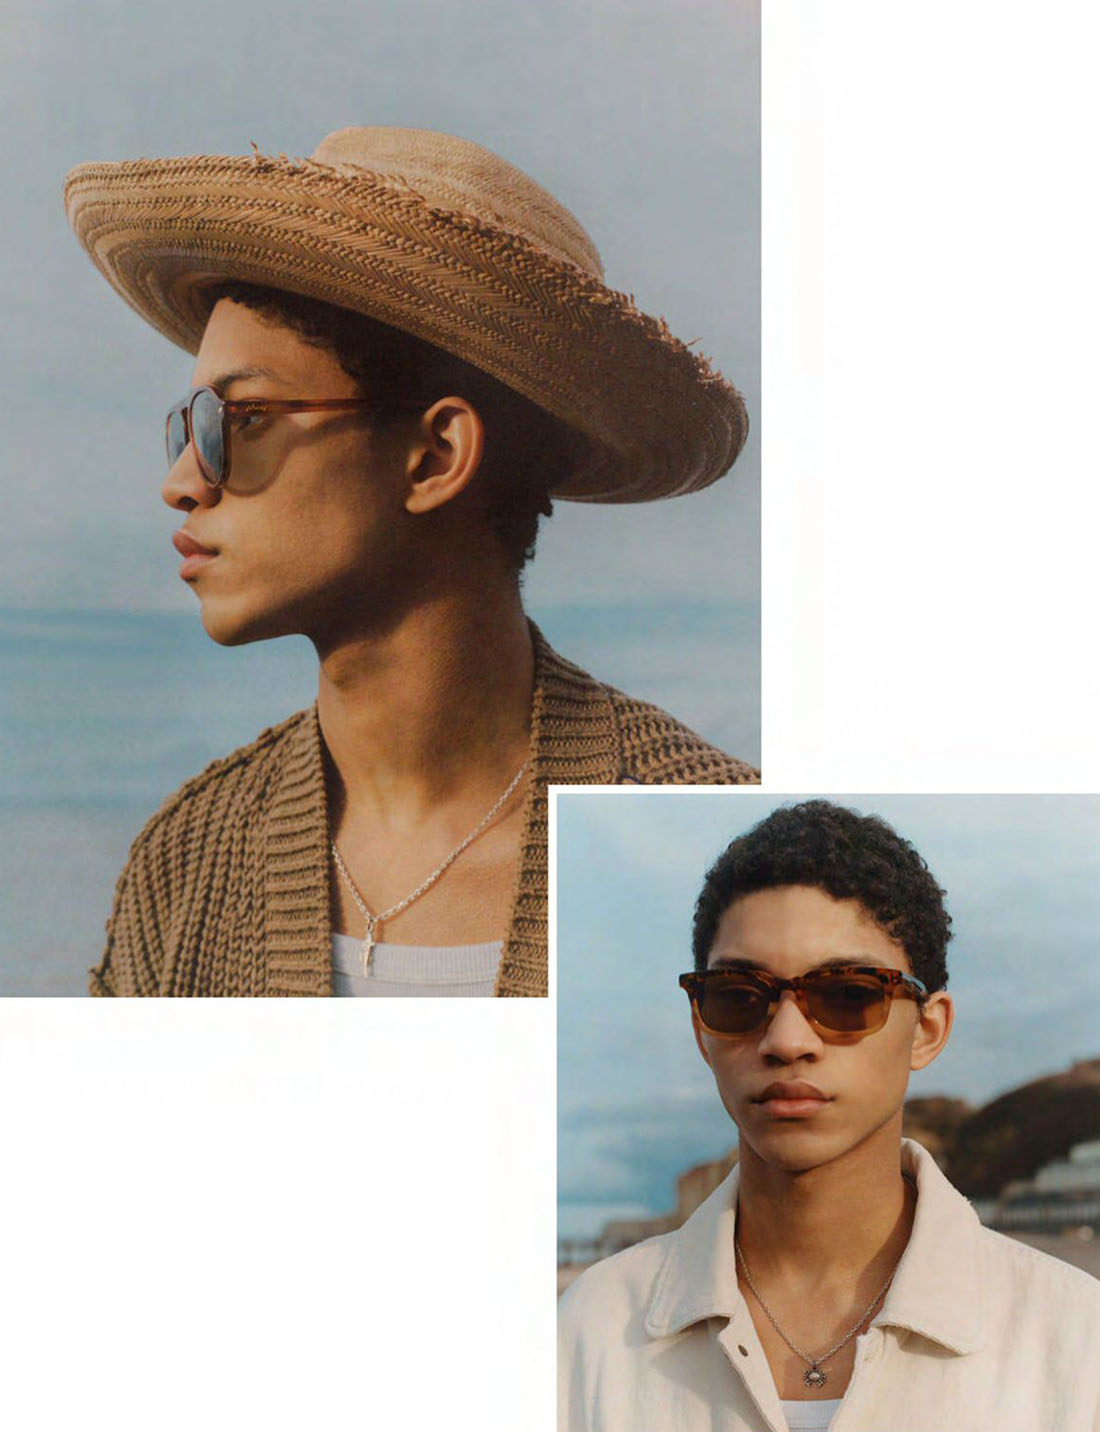 Lucas El Bali and Jeranimo van Russel by Marco Imperatore for Vogue Hommes Spring/Summer 2021